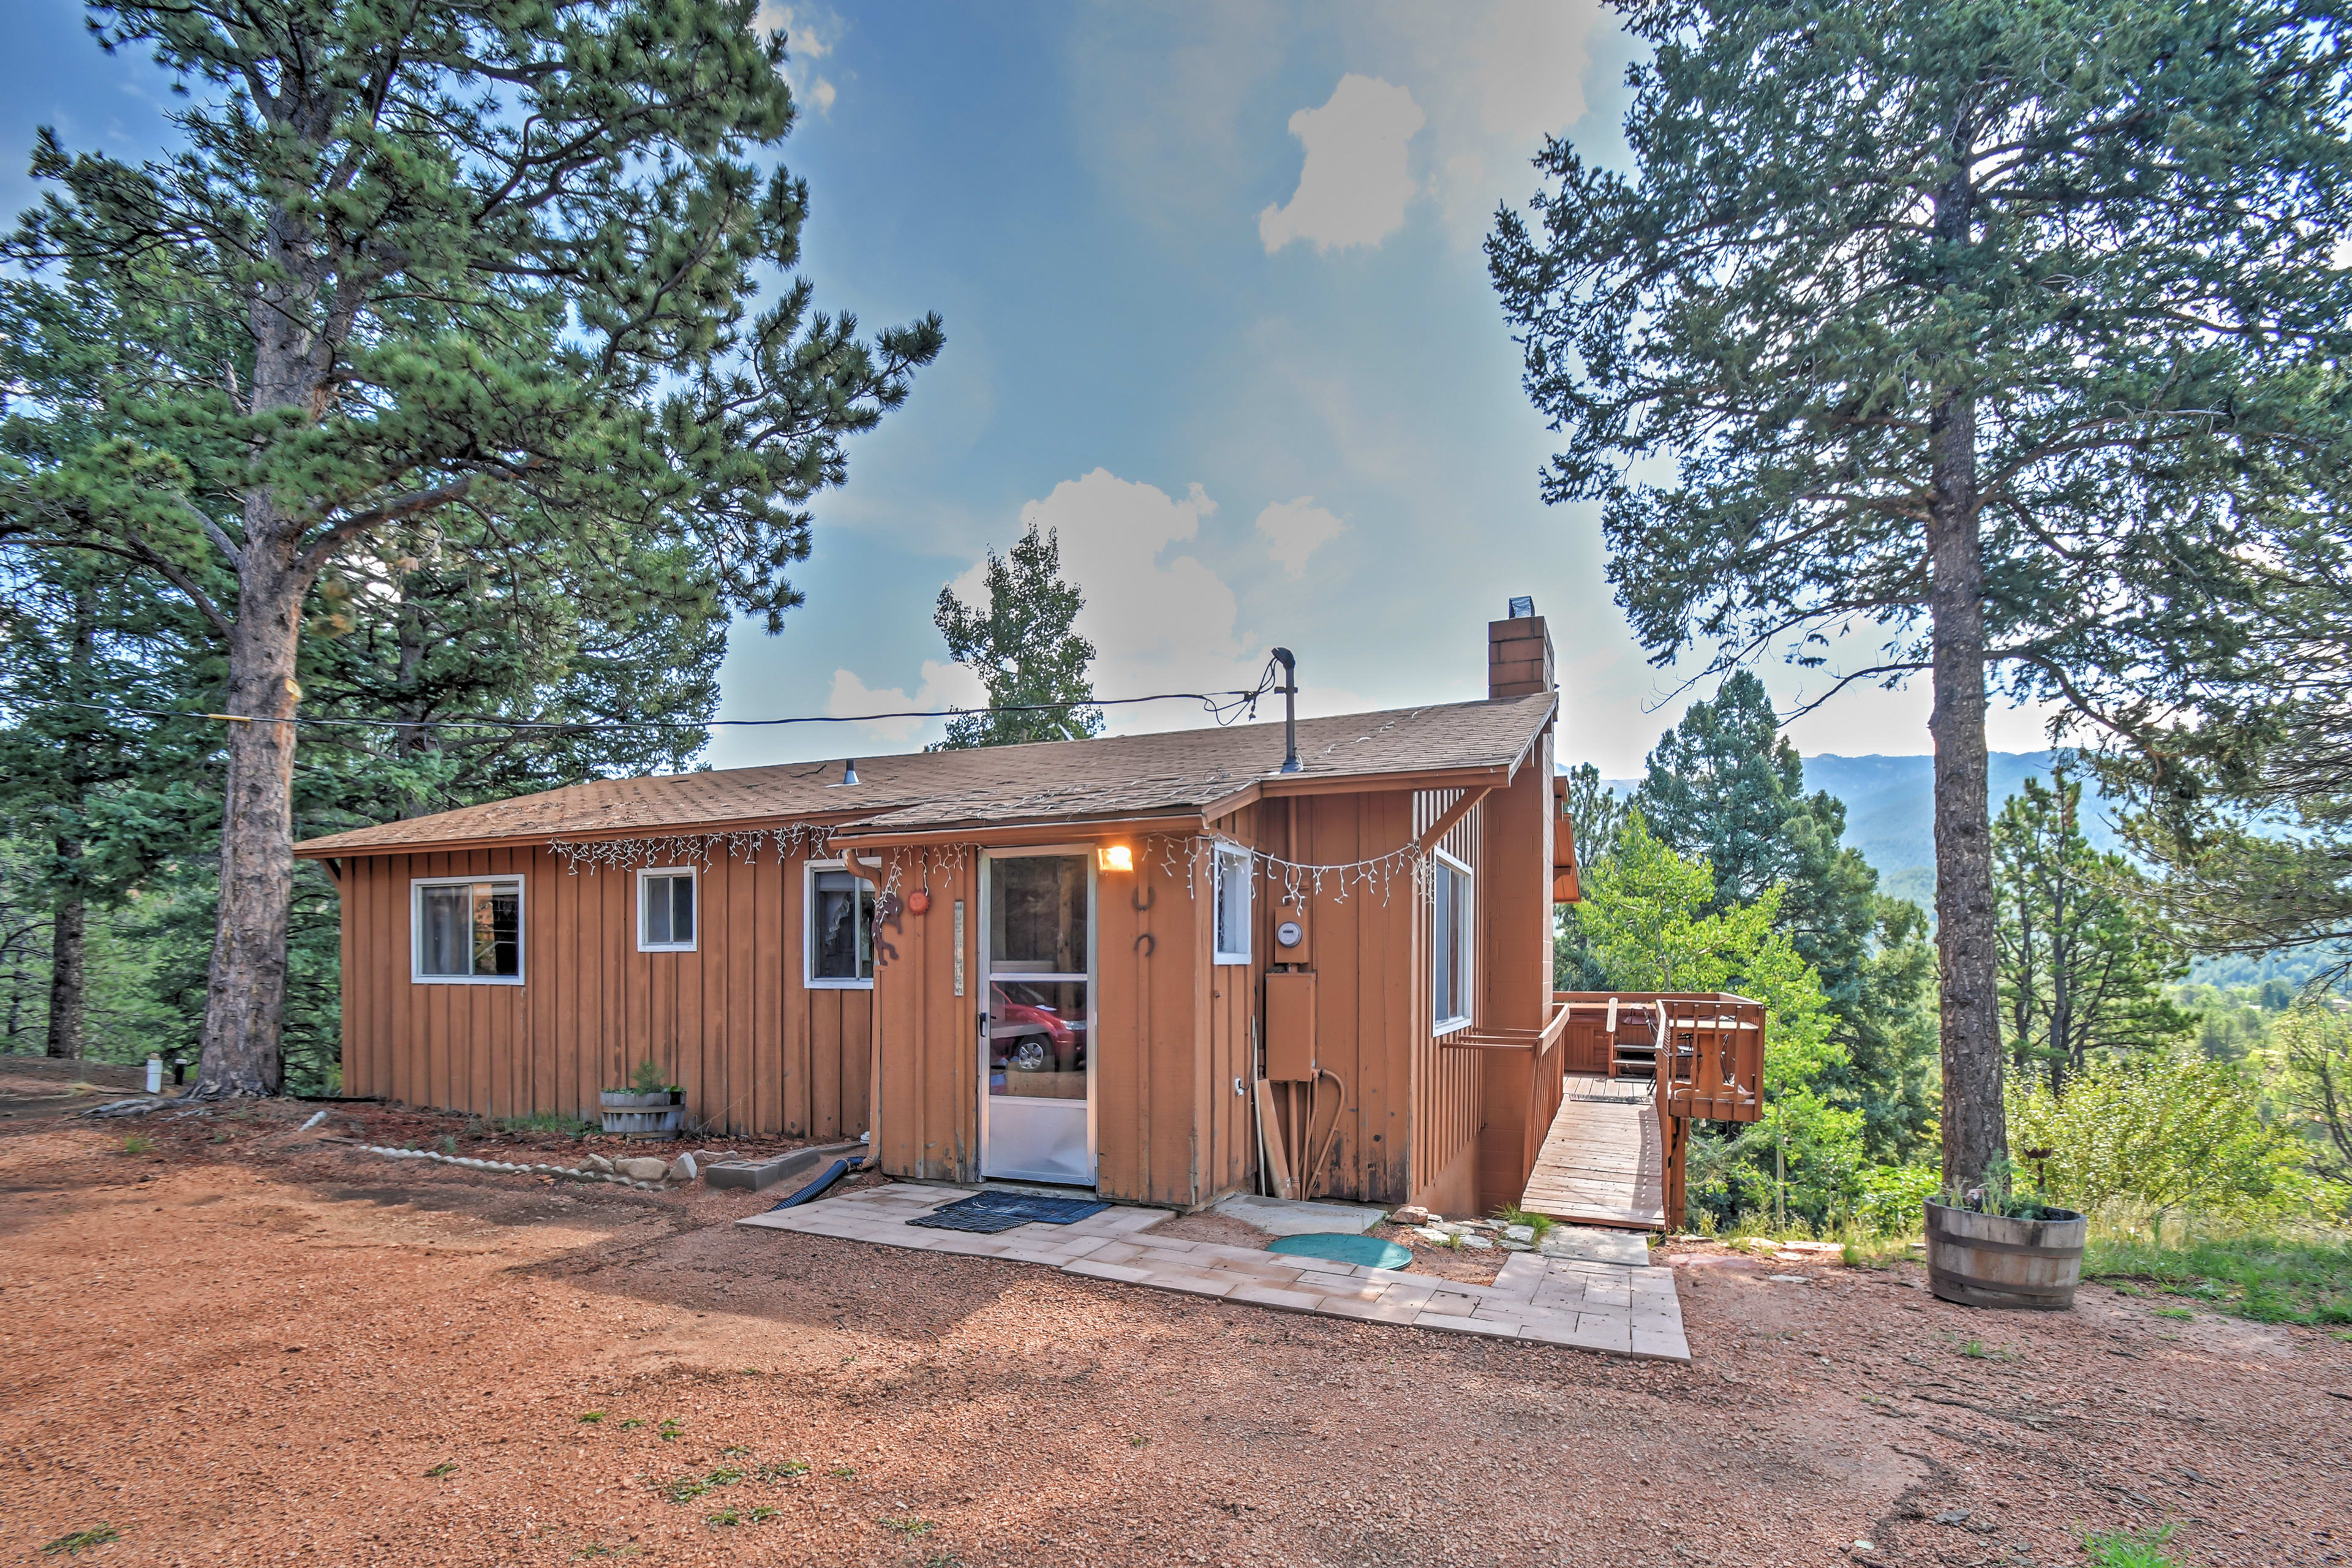 'Horseshoe Lodge' is a secluded Divide cabin surrounded by towering trees.